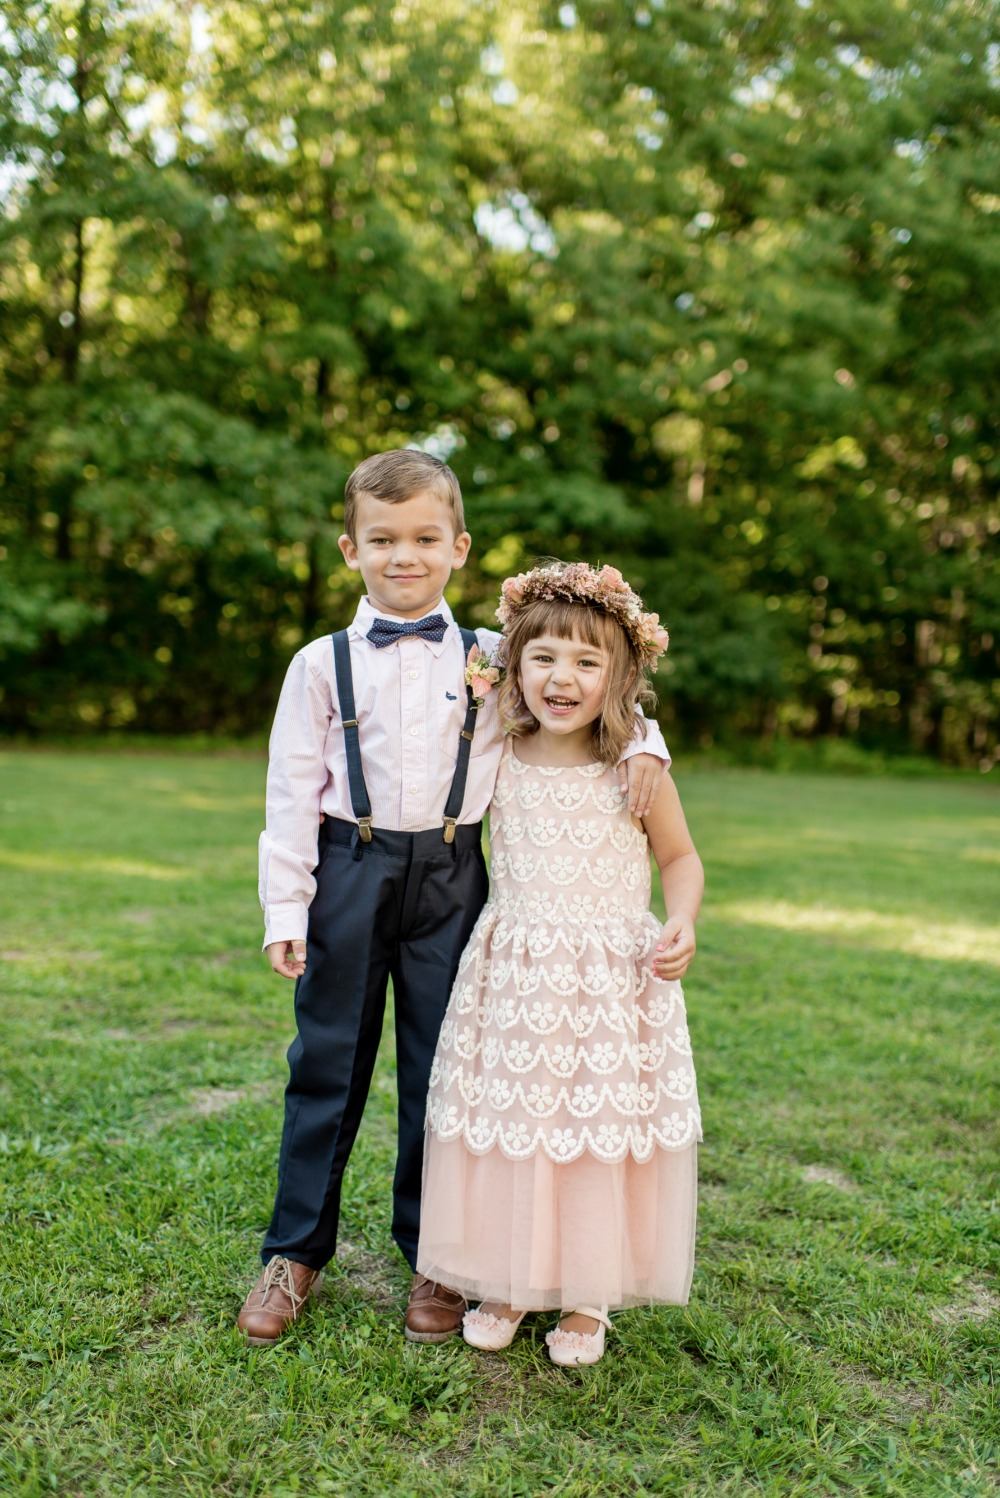 Ring bearer and cute flower girl